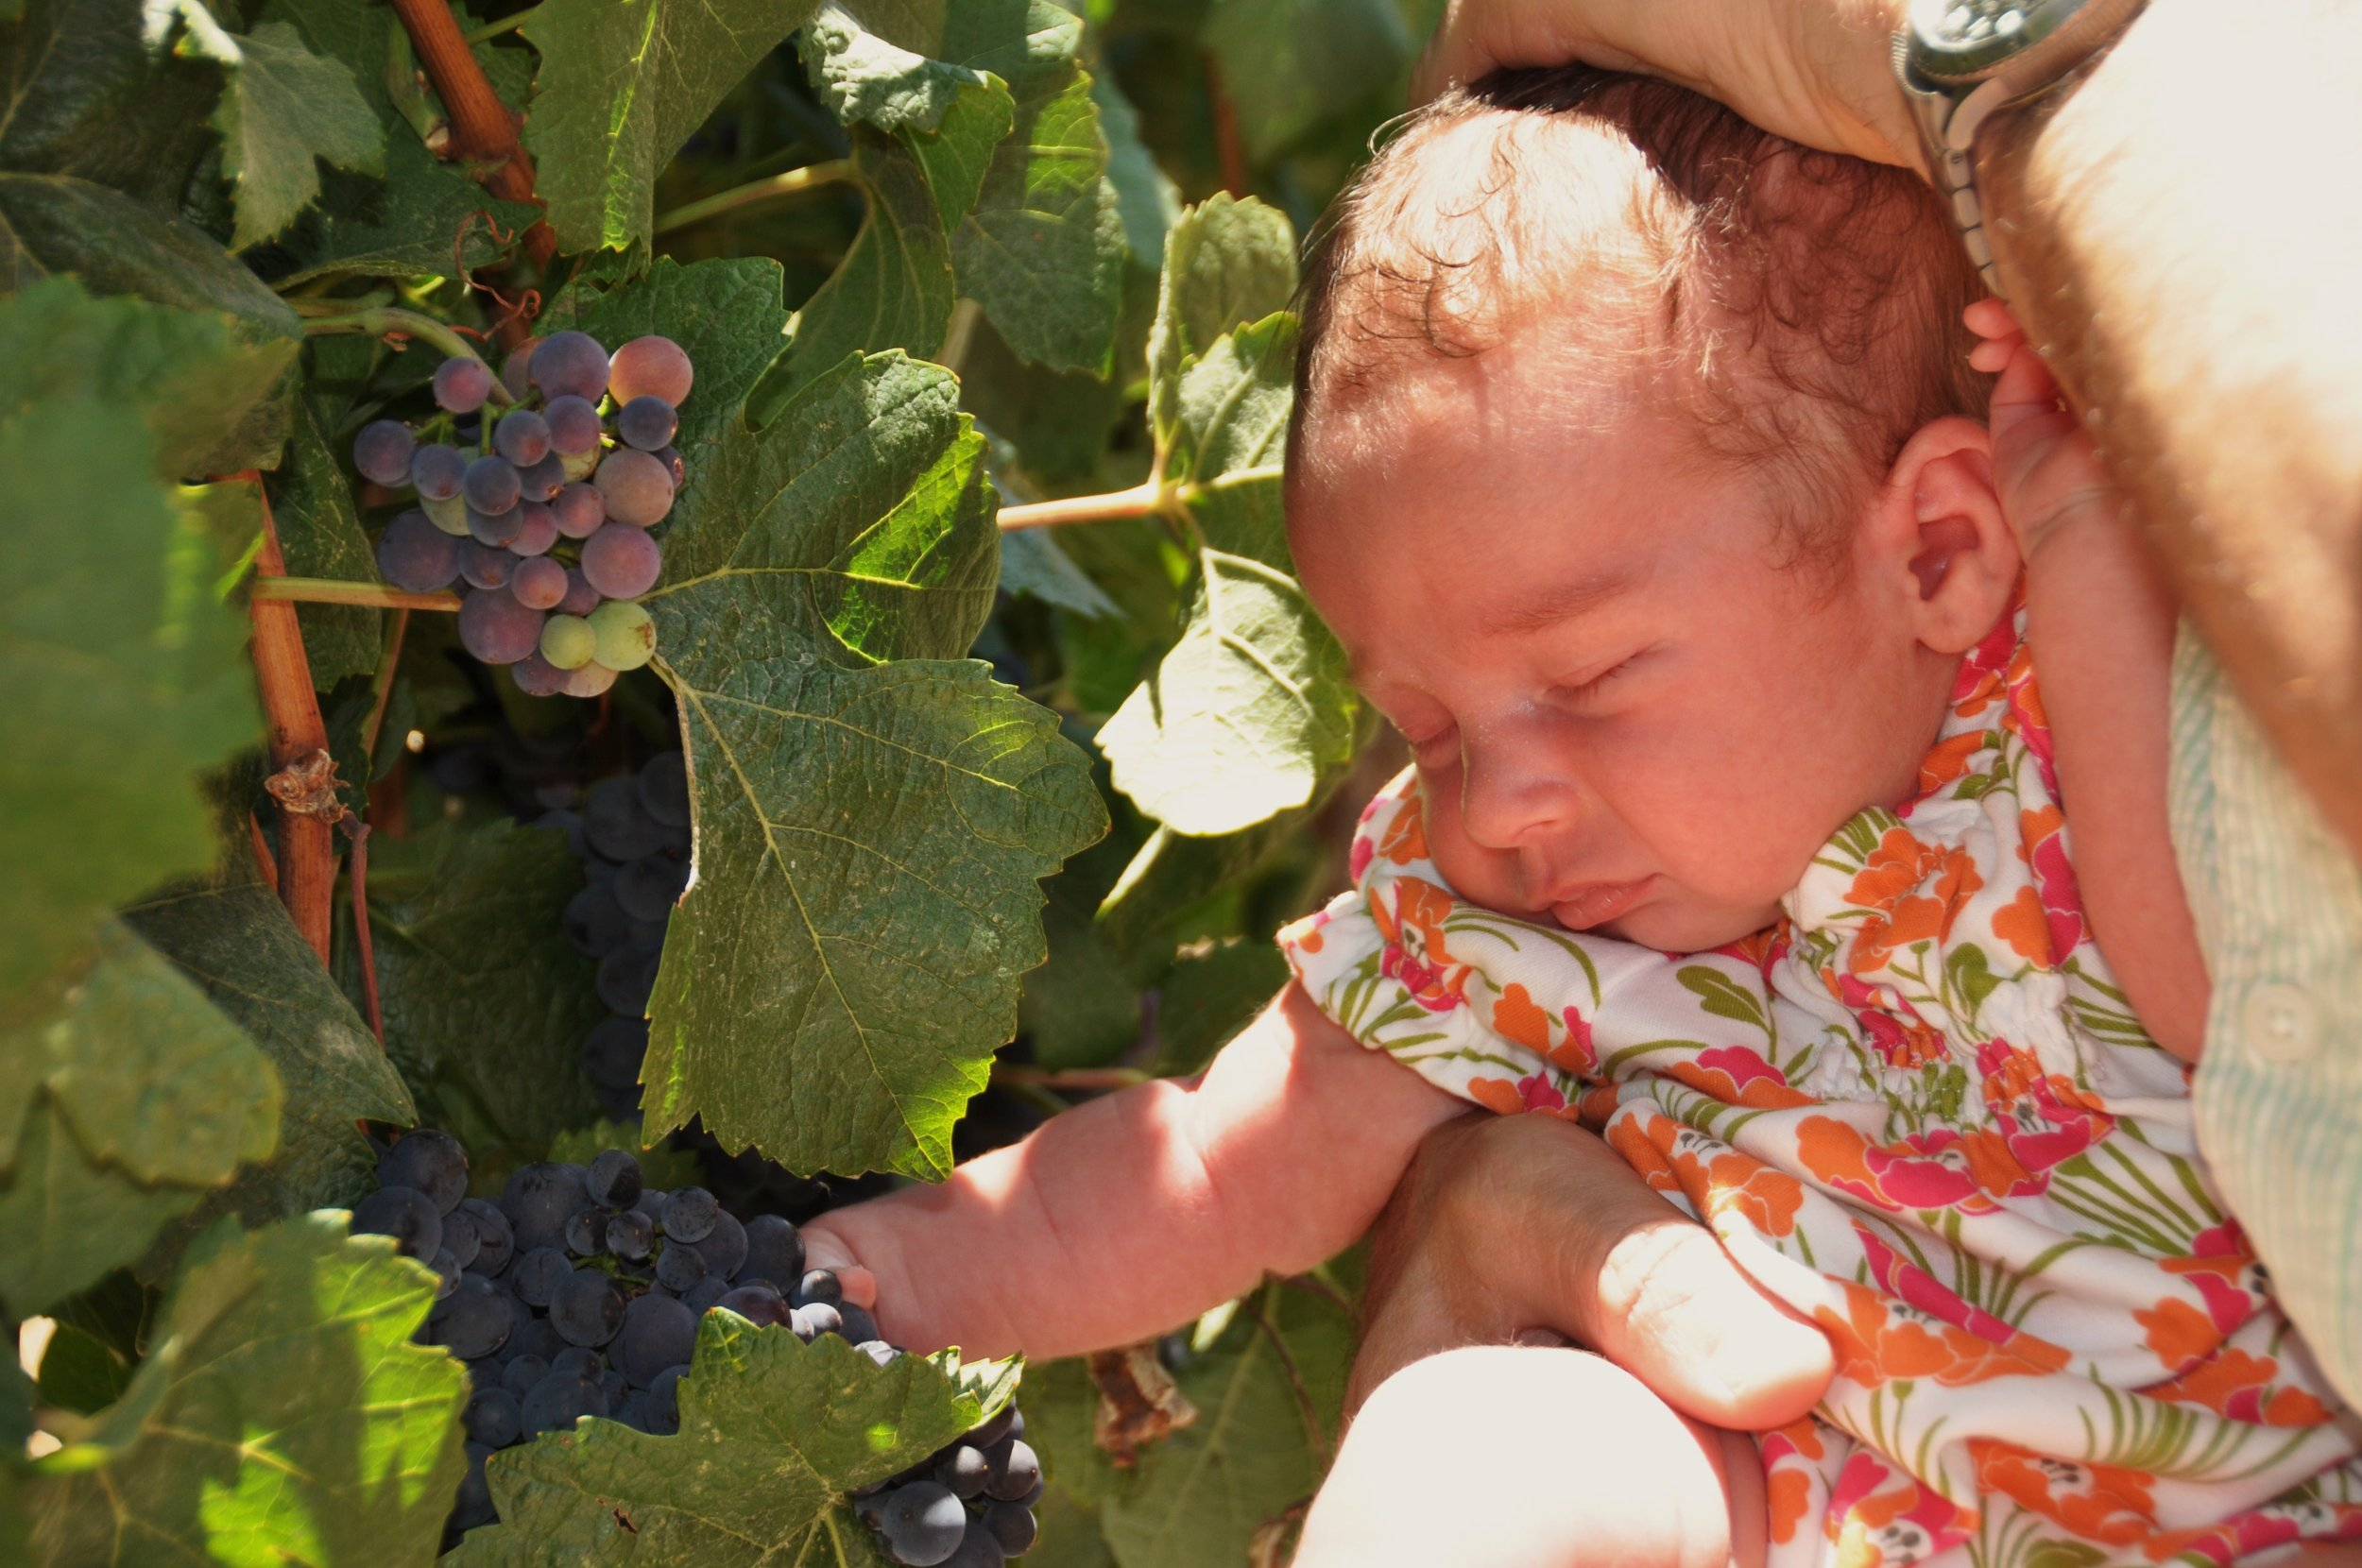 Baby Ella inspecting the grapes.